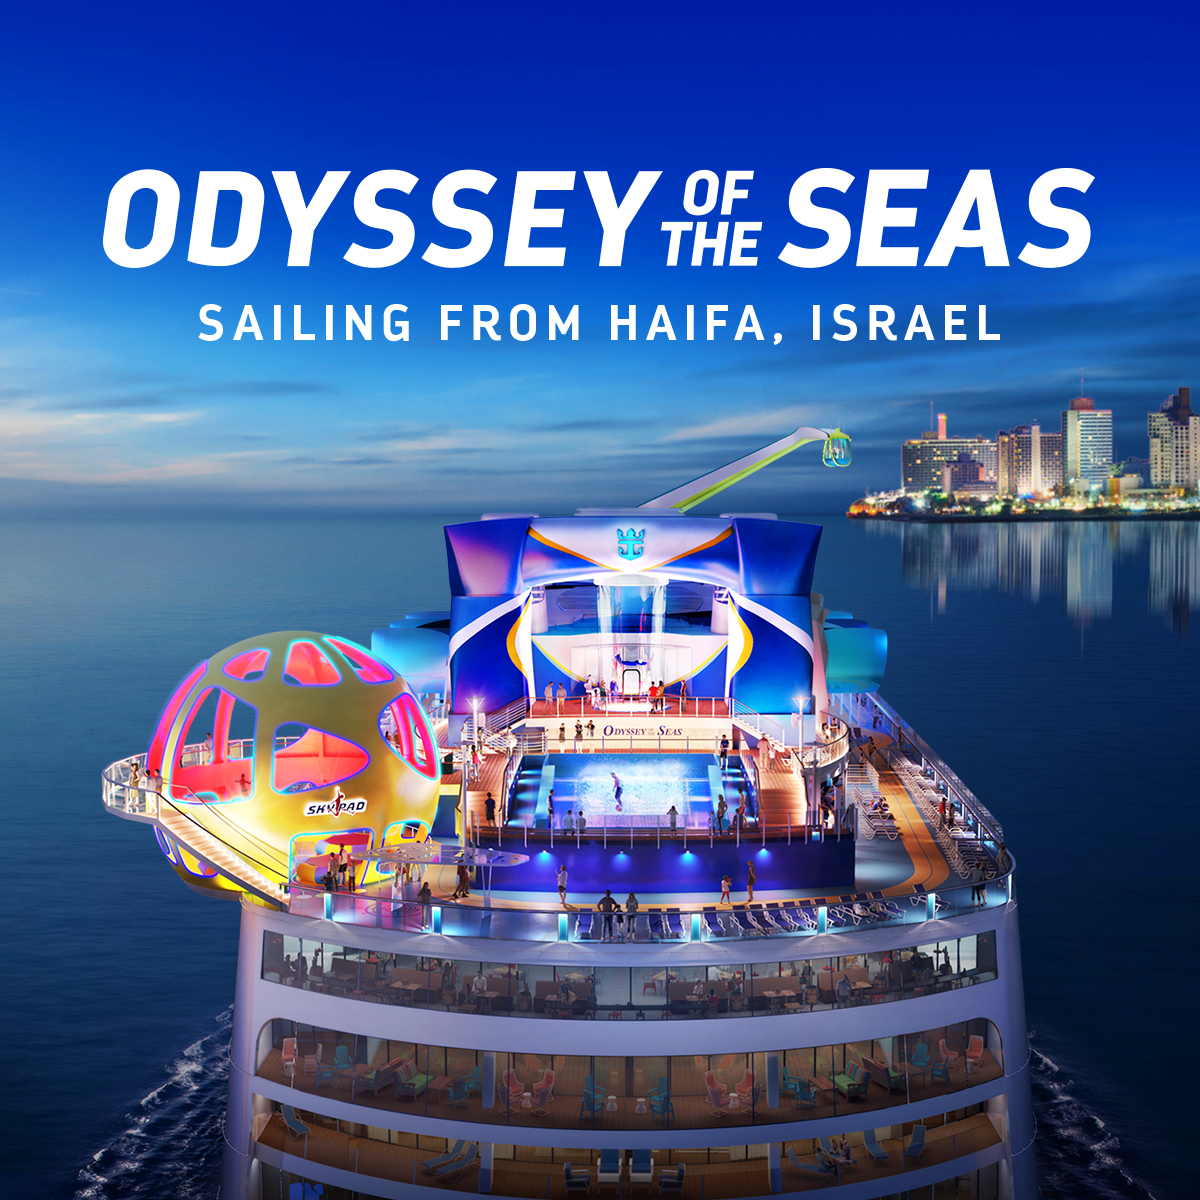 ODYSSEY OF THE SEAS SAILING FROM HAIFA